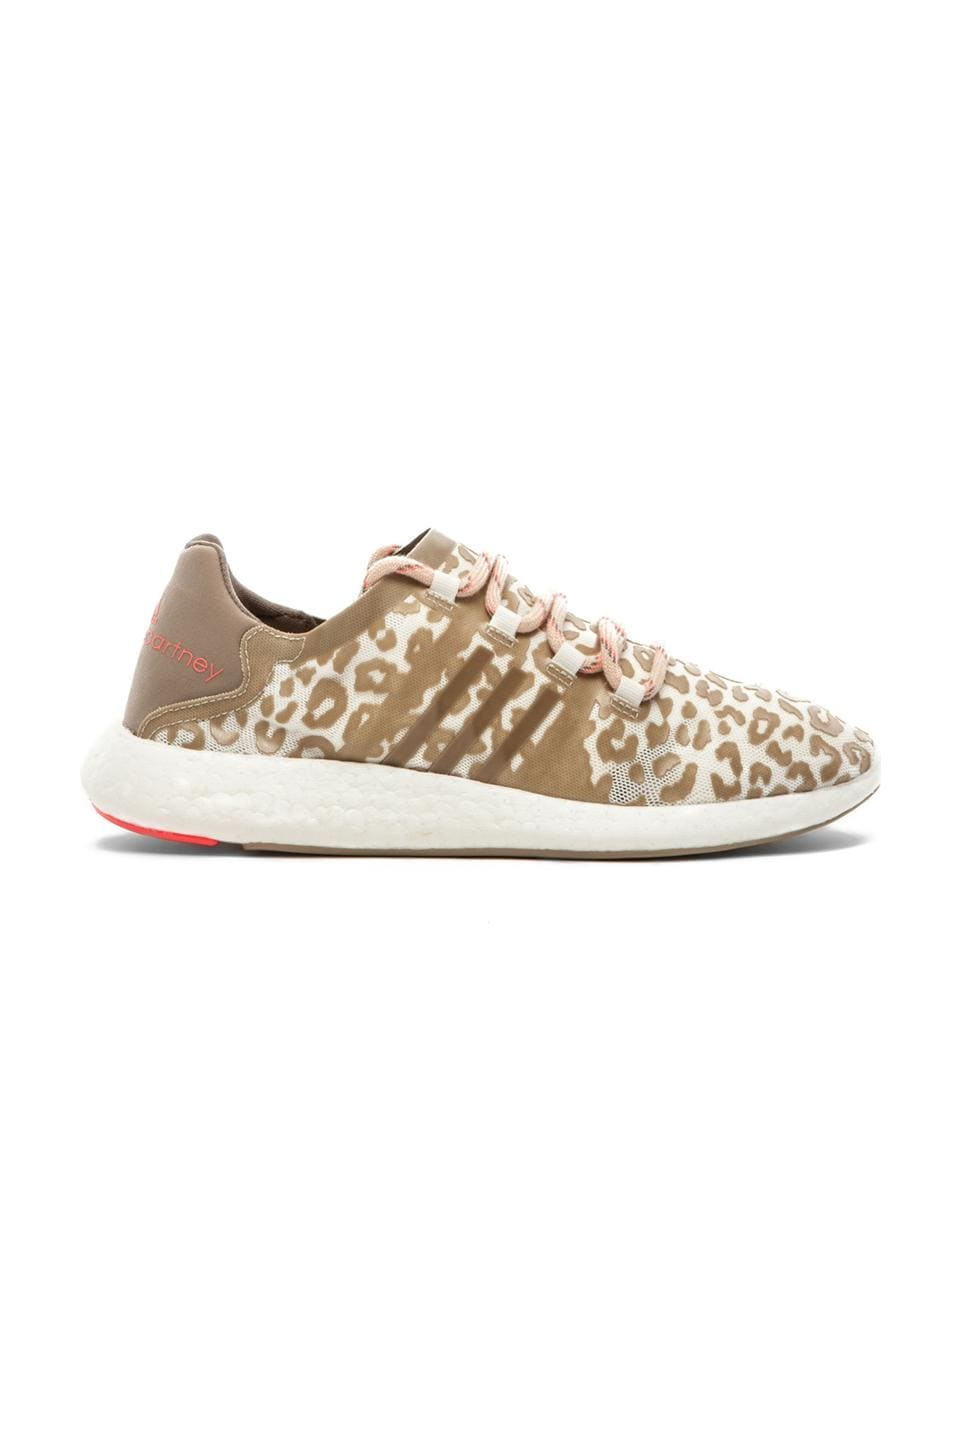 adidas by Stella McCartney Pure Boost Running Shoes in Natural Grey & Ginger & Red Zest